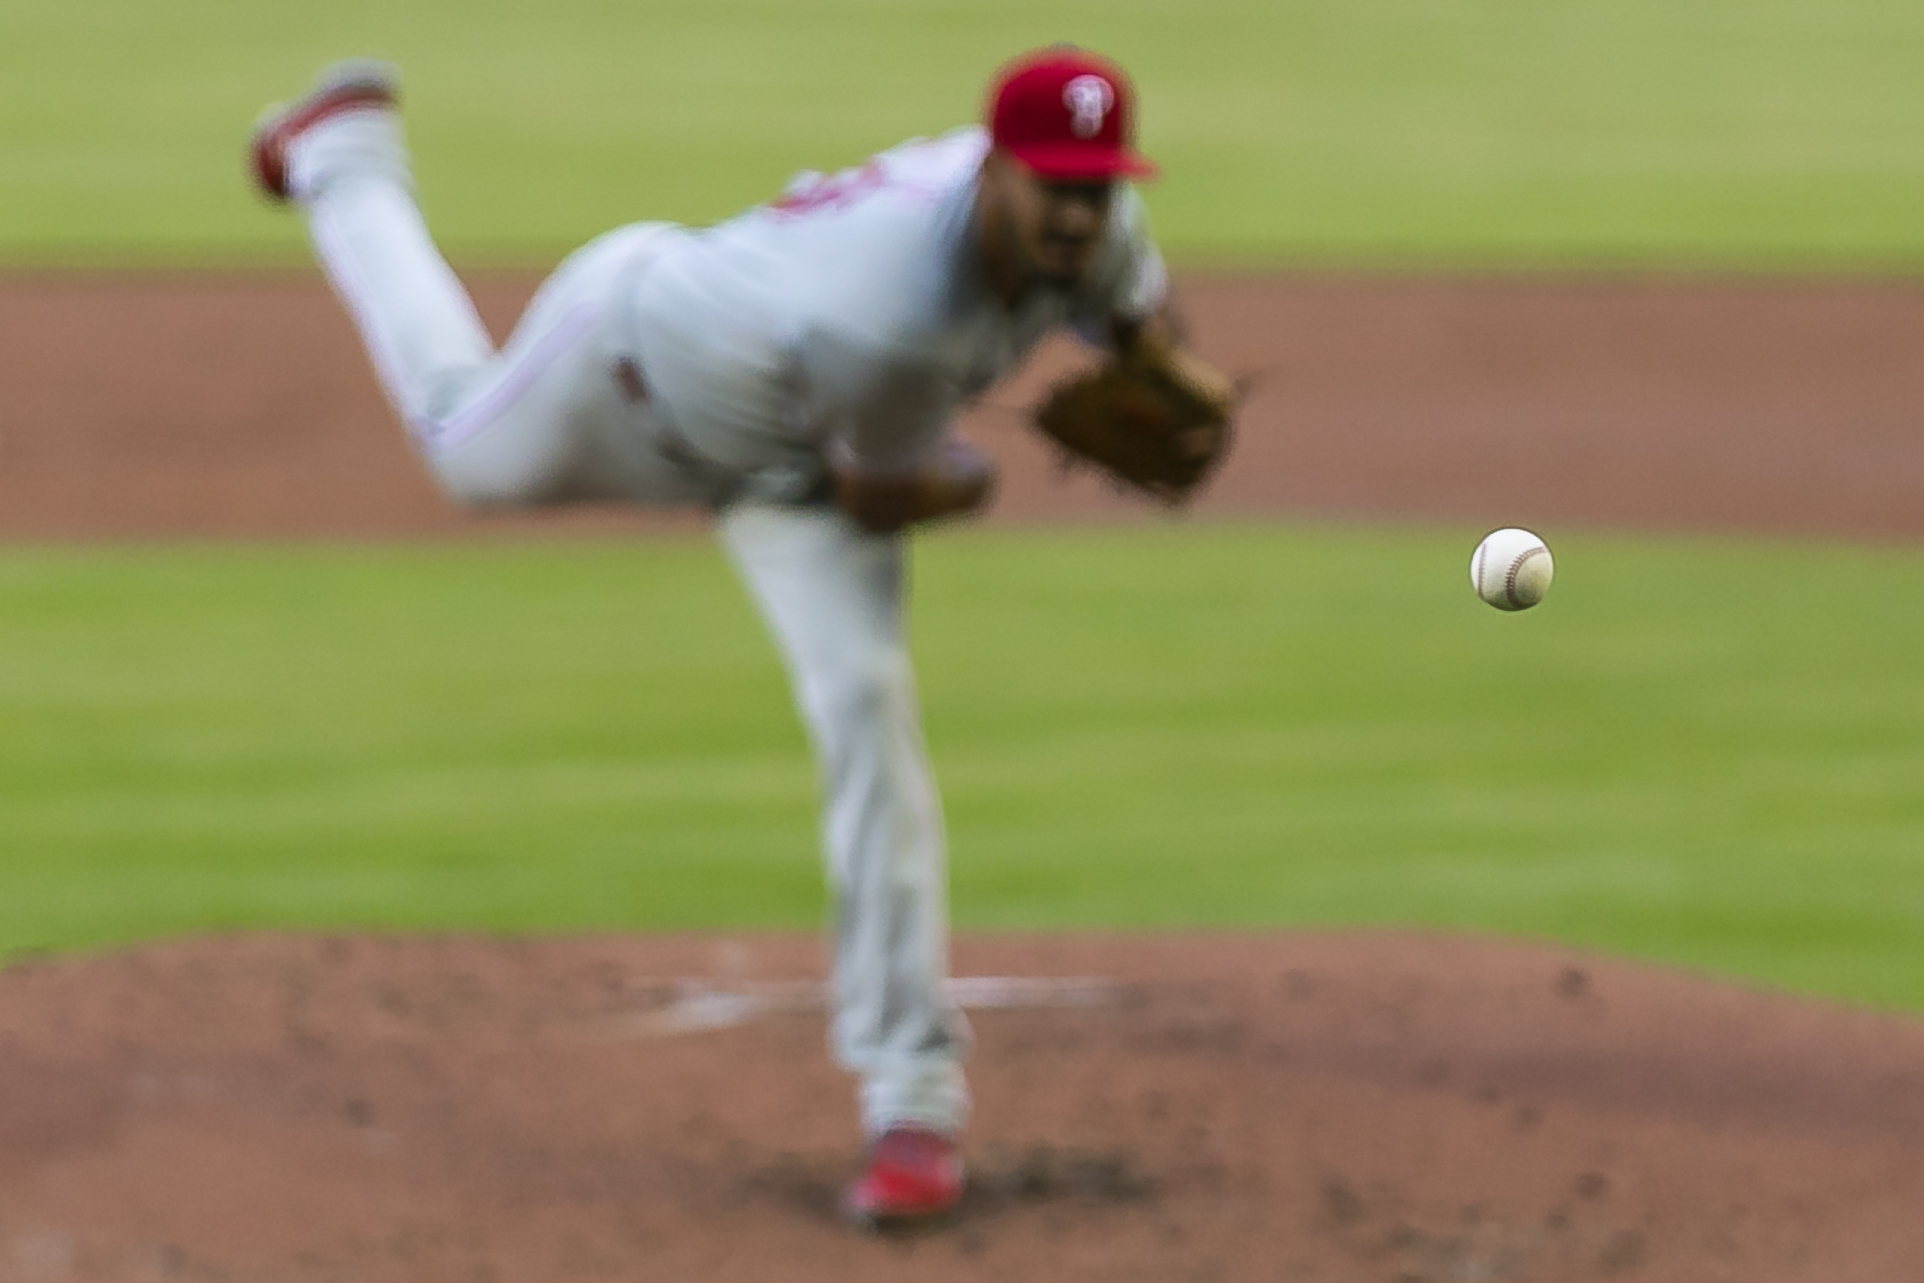 Philadelphia Phillies starting pitcher Zach Eflin (56) pitches against the Miami Marlins in the first inning of a baseball game at Marlins Park in Miami on Saturday, April 13, 2019.